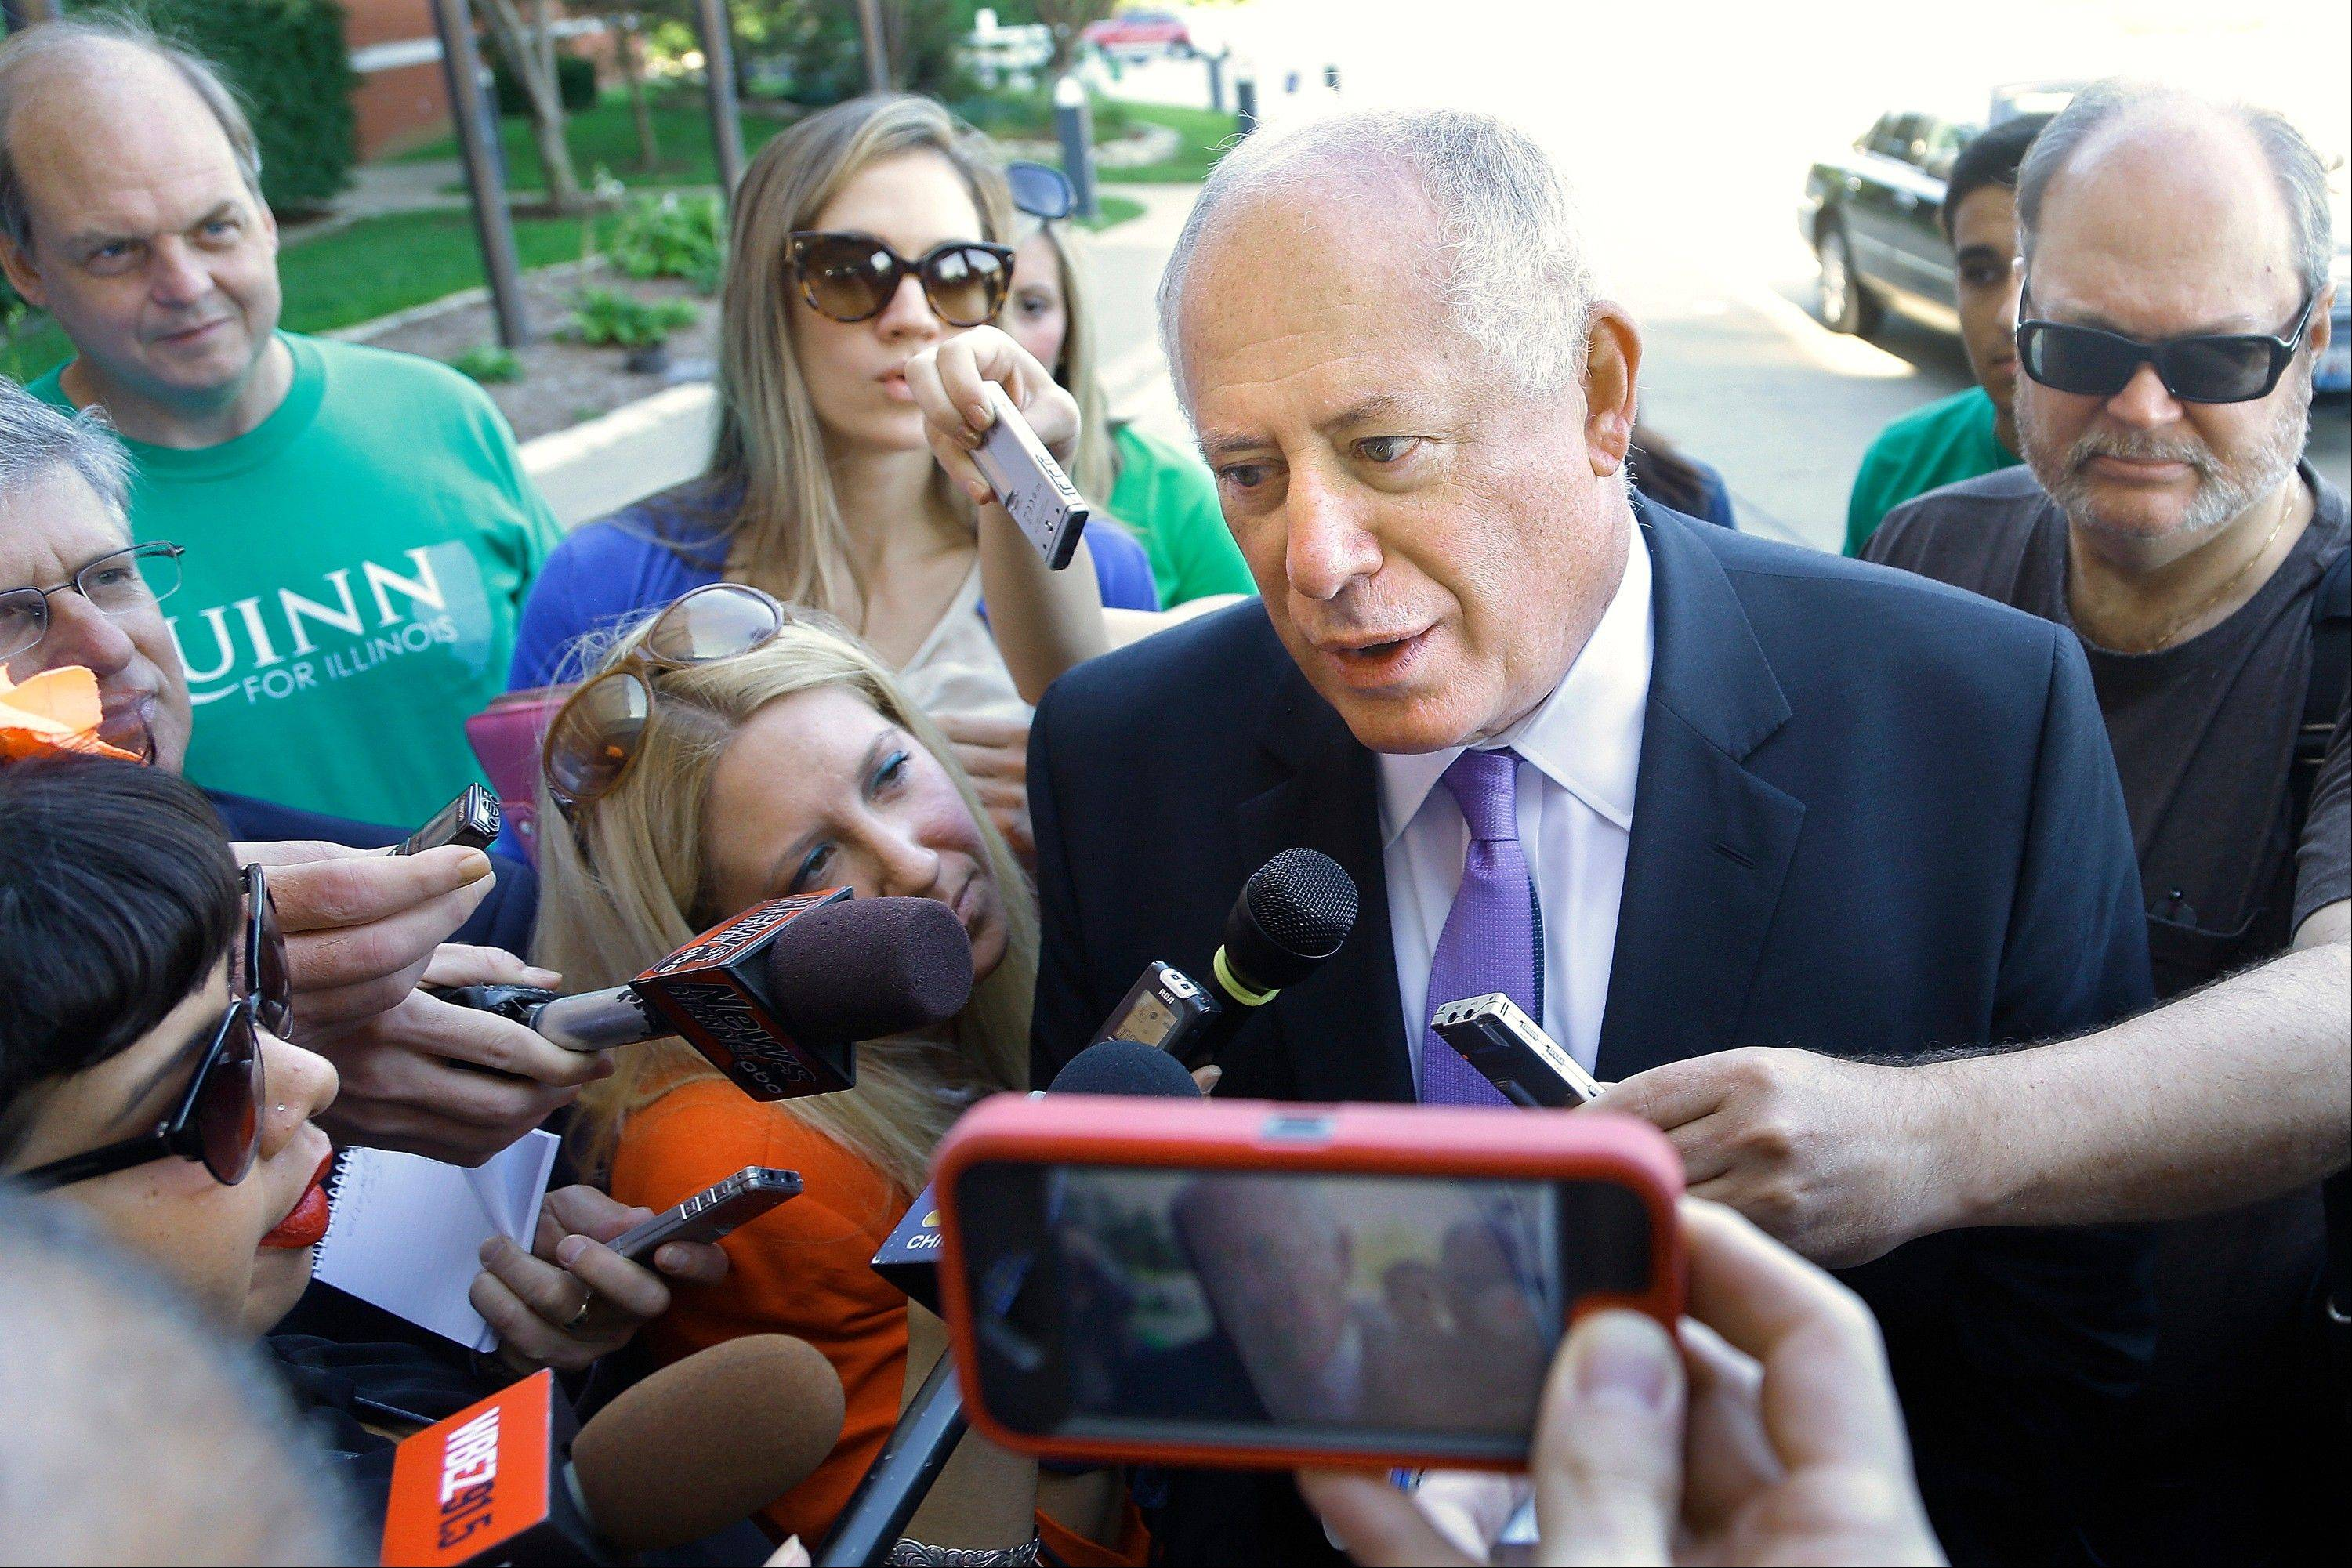 Gov. Pat Quinn speaks to reporters Wednesday in Springfield. Quinn, who is facing at least one challenge from former White House Chief of Staff Bill Daley, vowed to beat anyone who opposed him in the election.